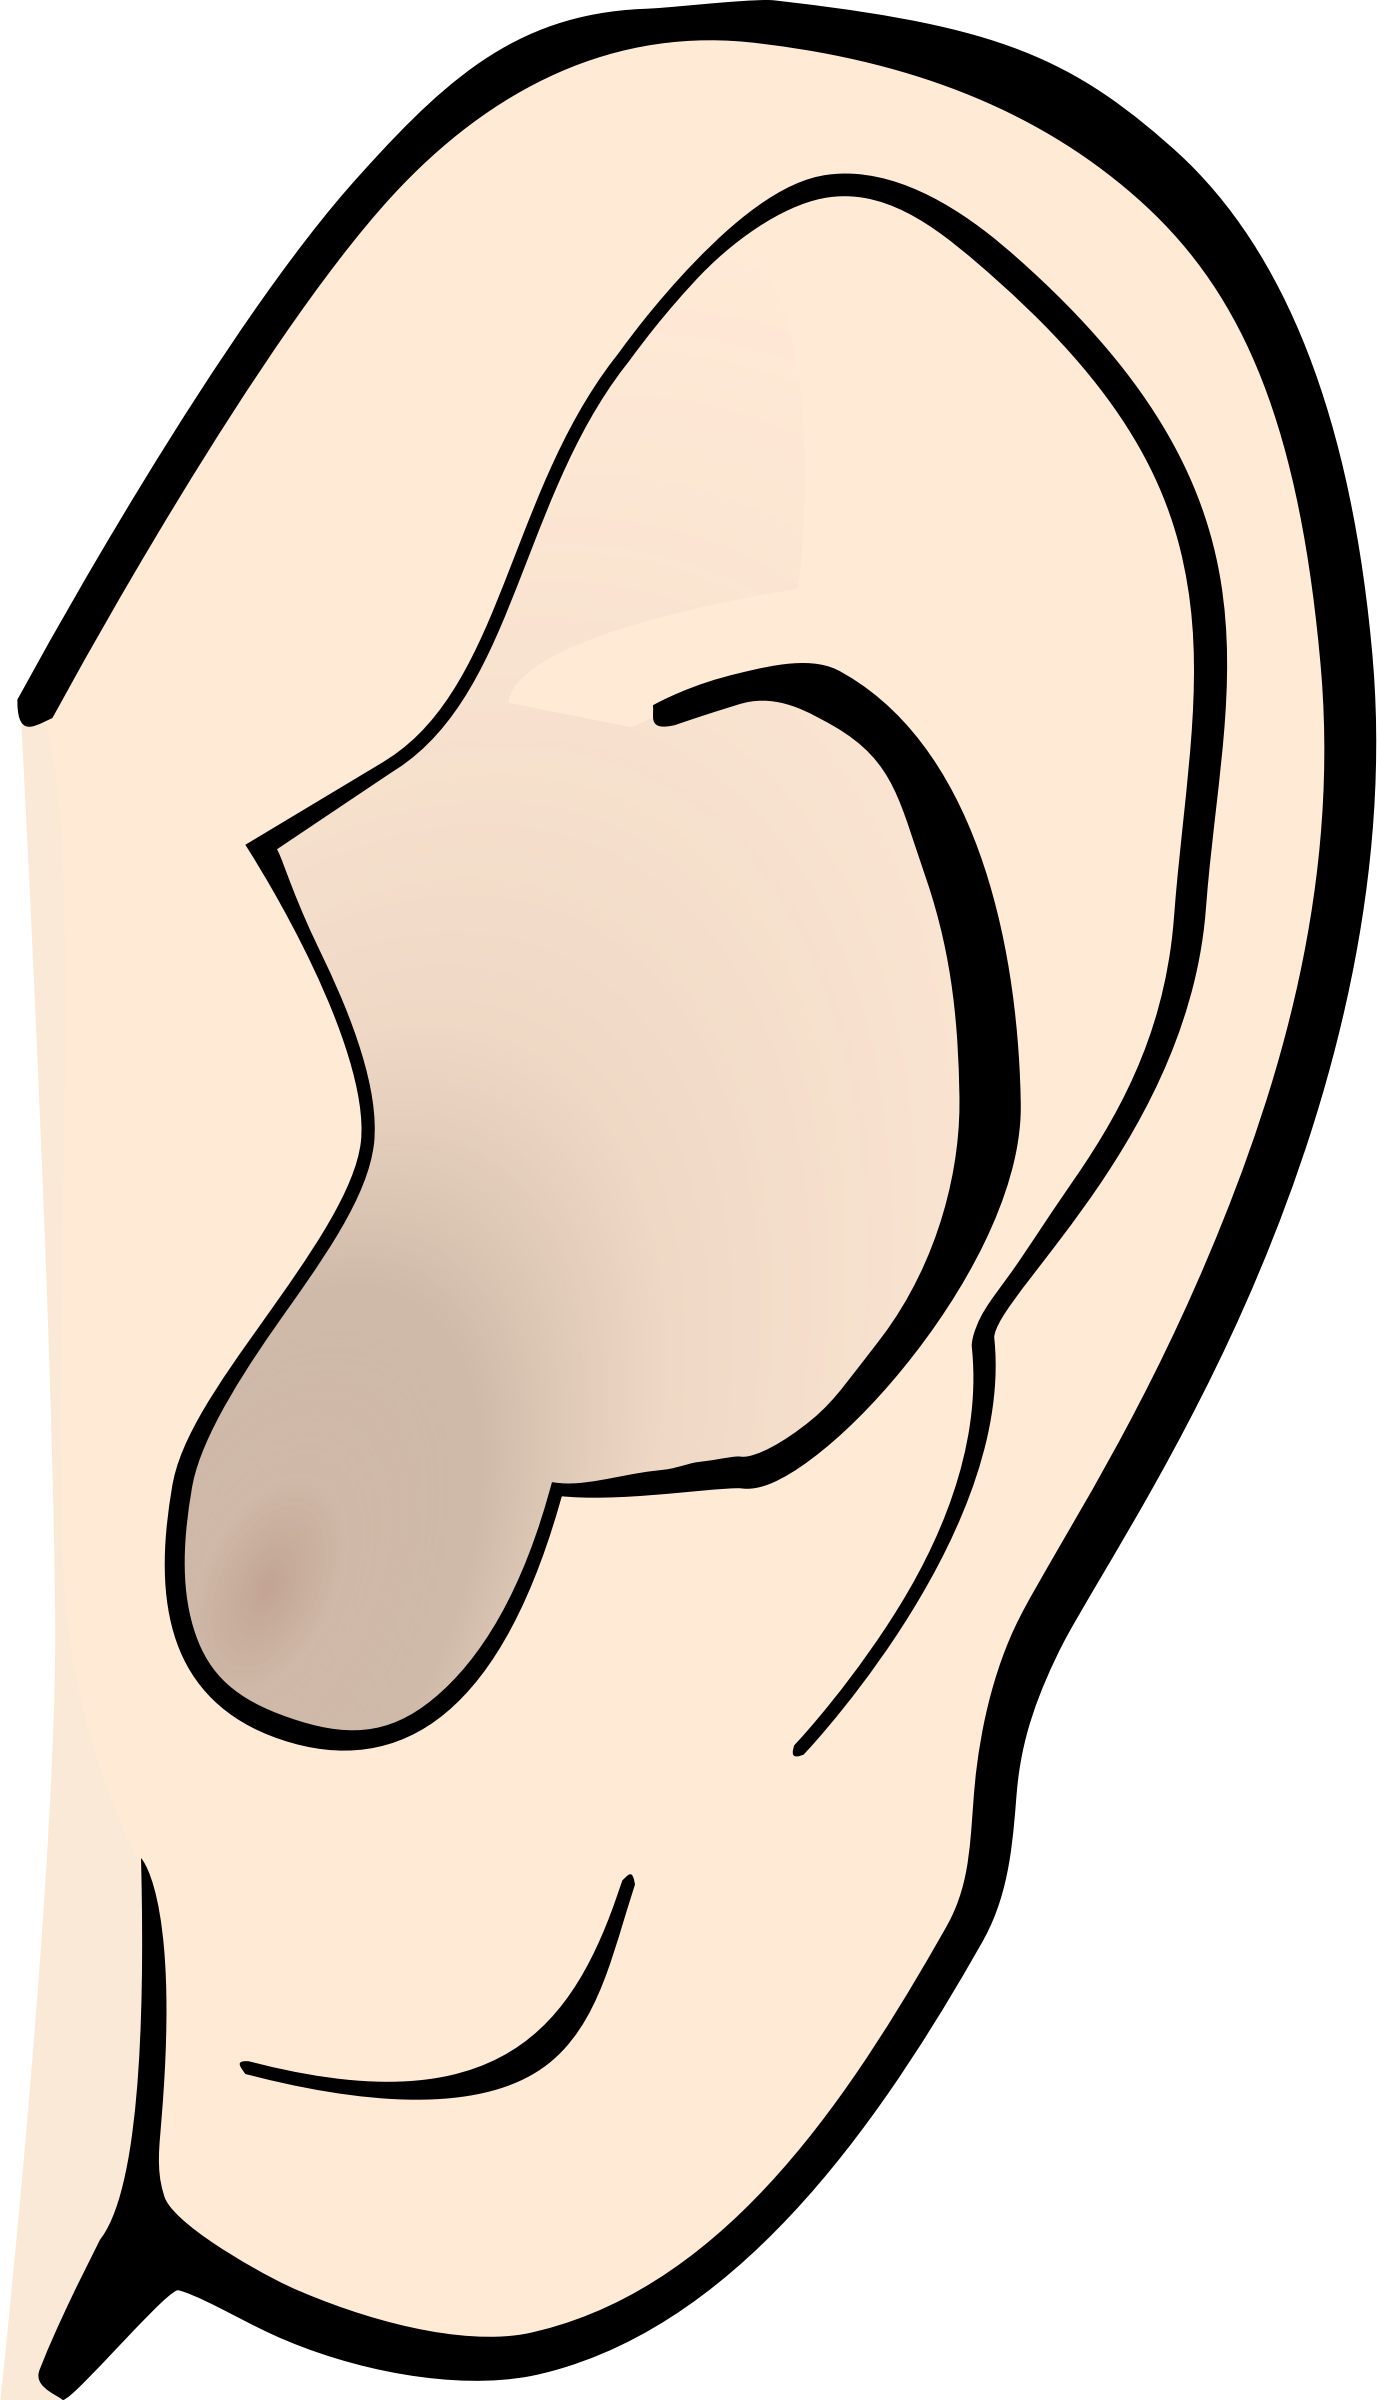 Ear clipart sense hearing. Senses at getdrawings